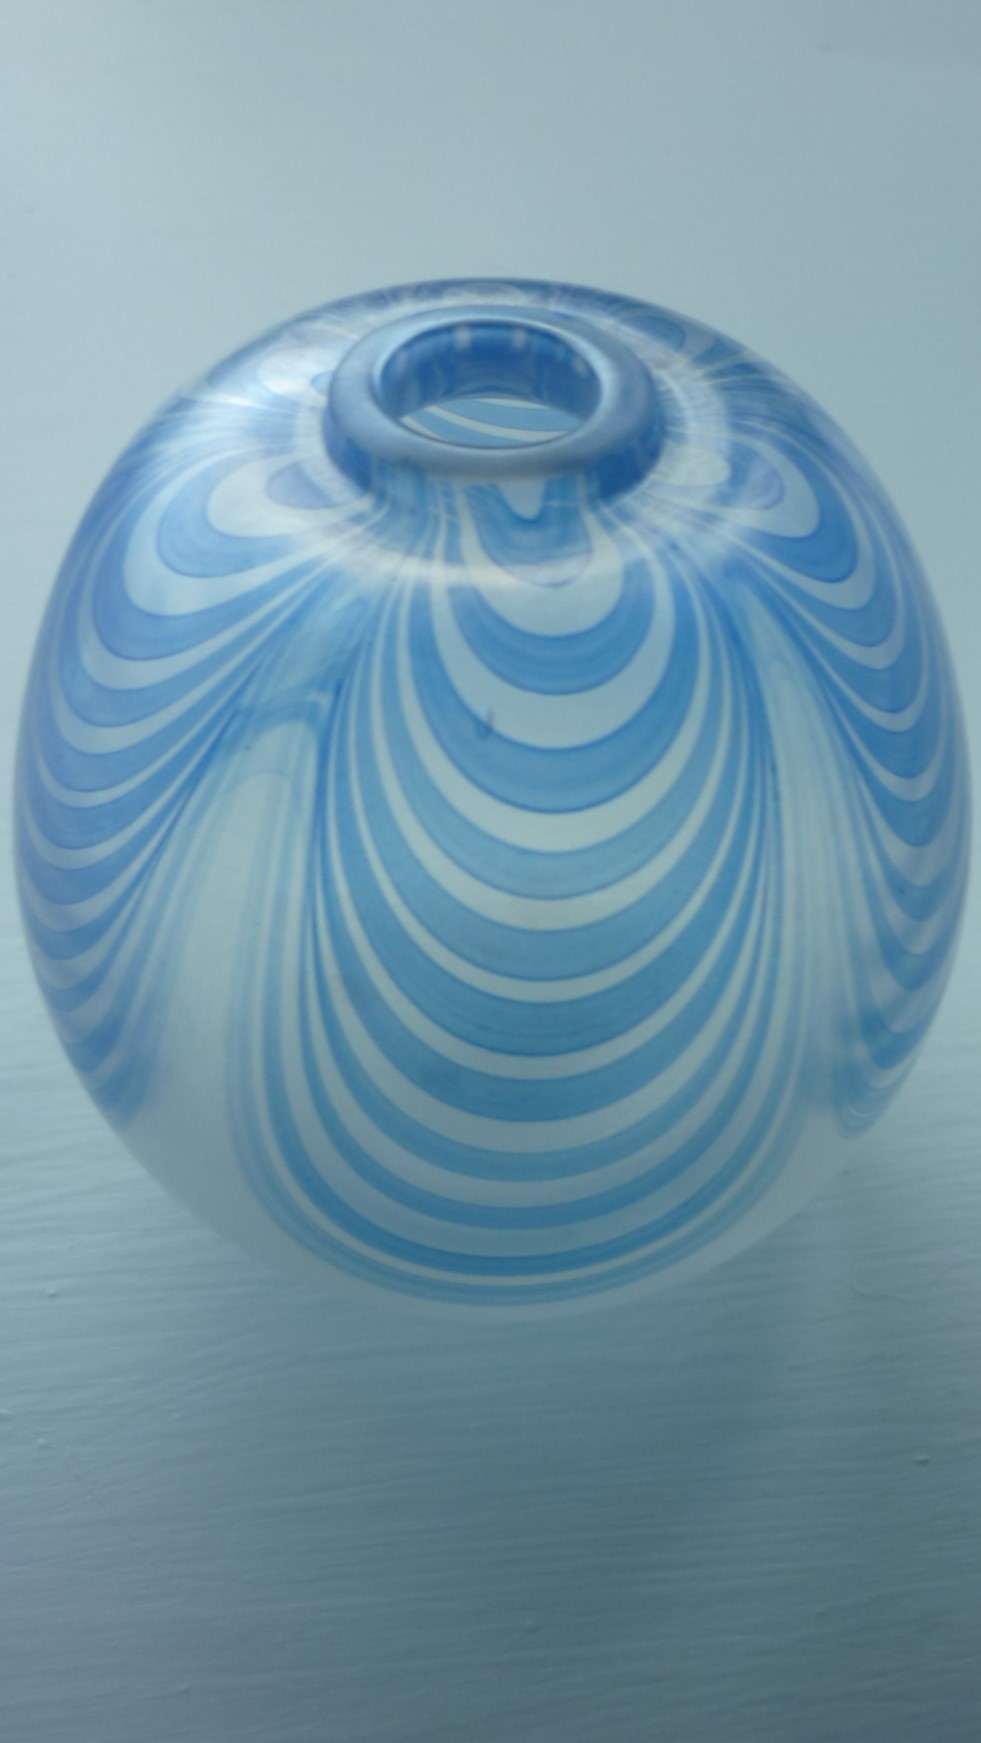 Small charming Wallace and Sanders Glass Iridescent Vase